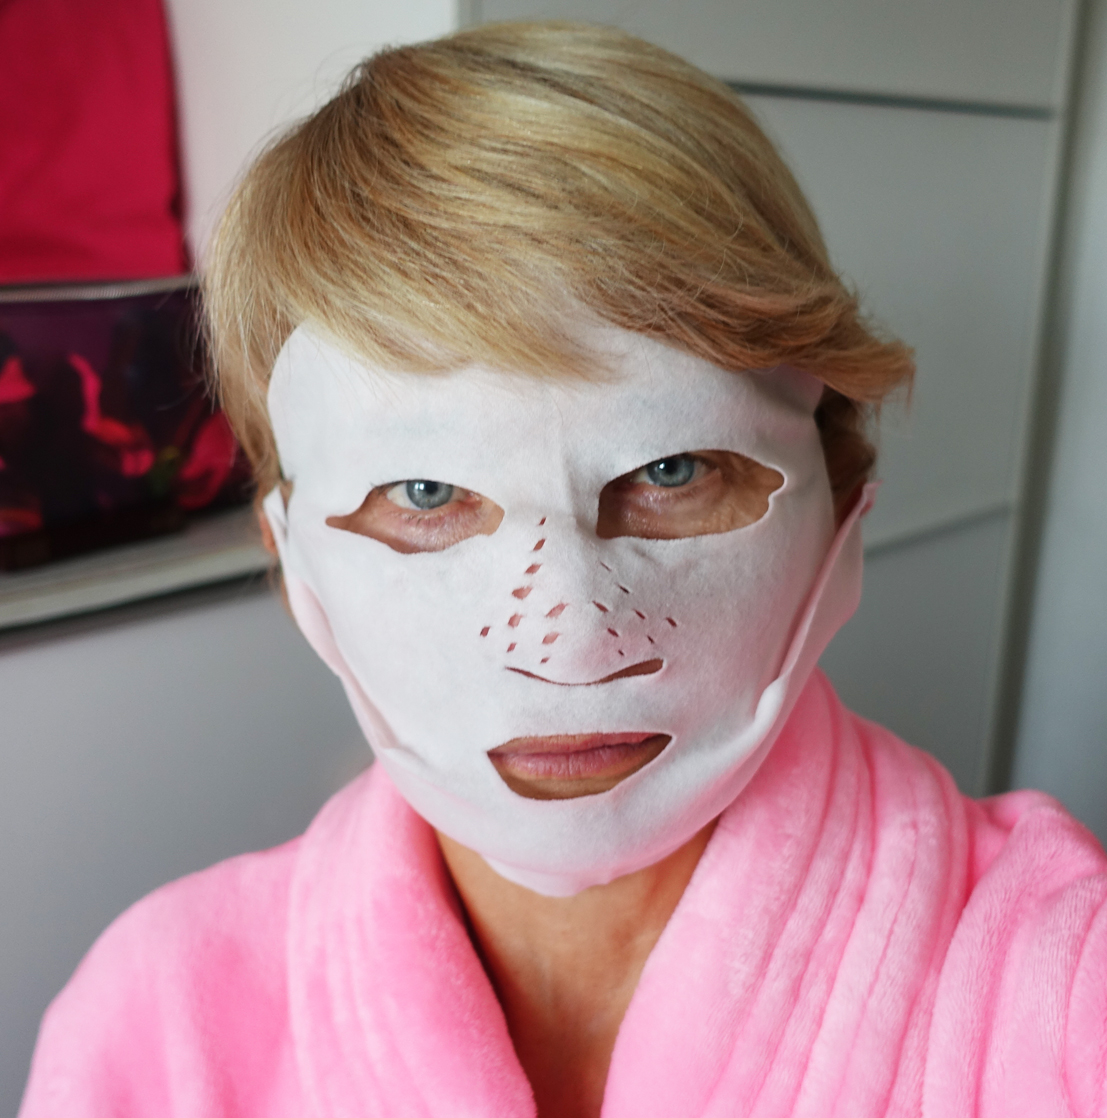 A look for a horror film - Is This Mutton? blogger tries out the dry sheet mask from Charlotte Tilbury